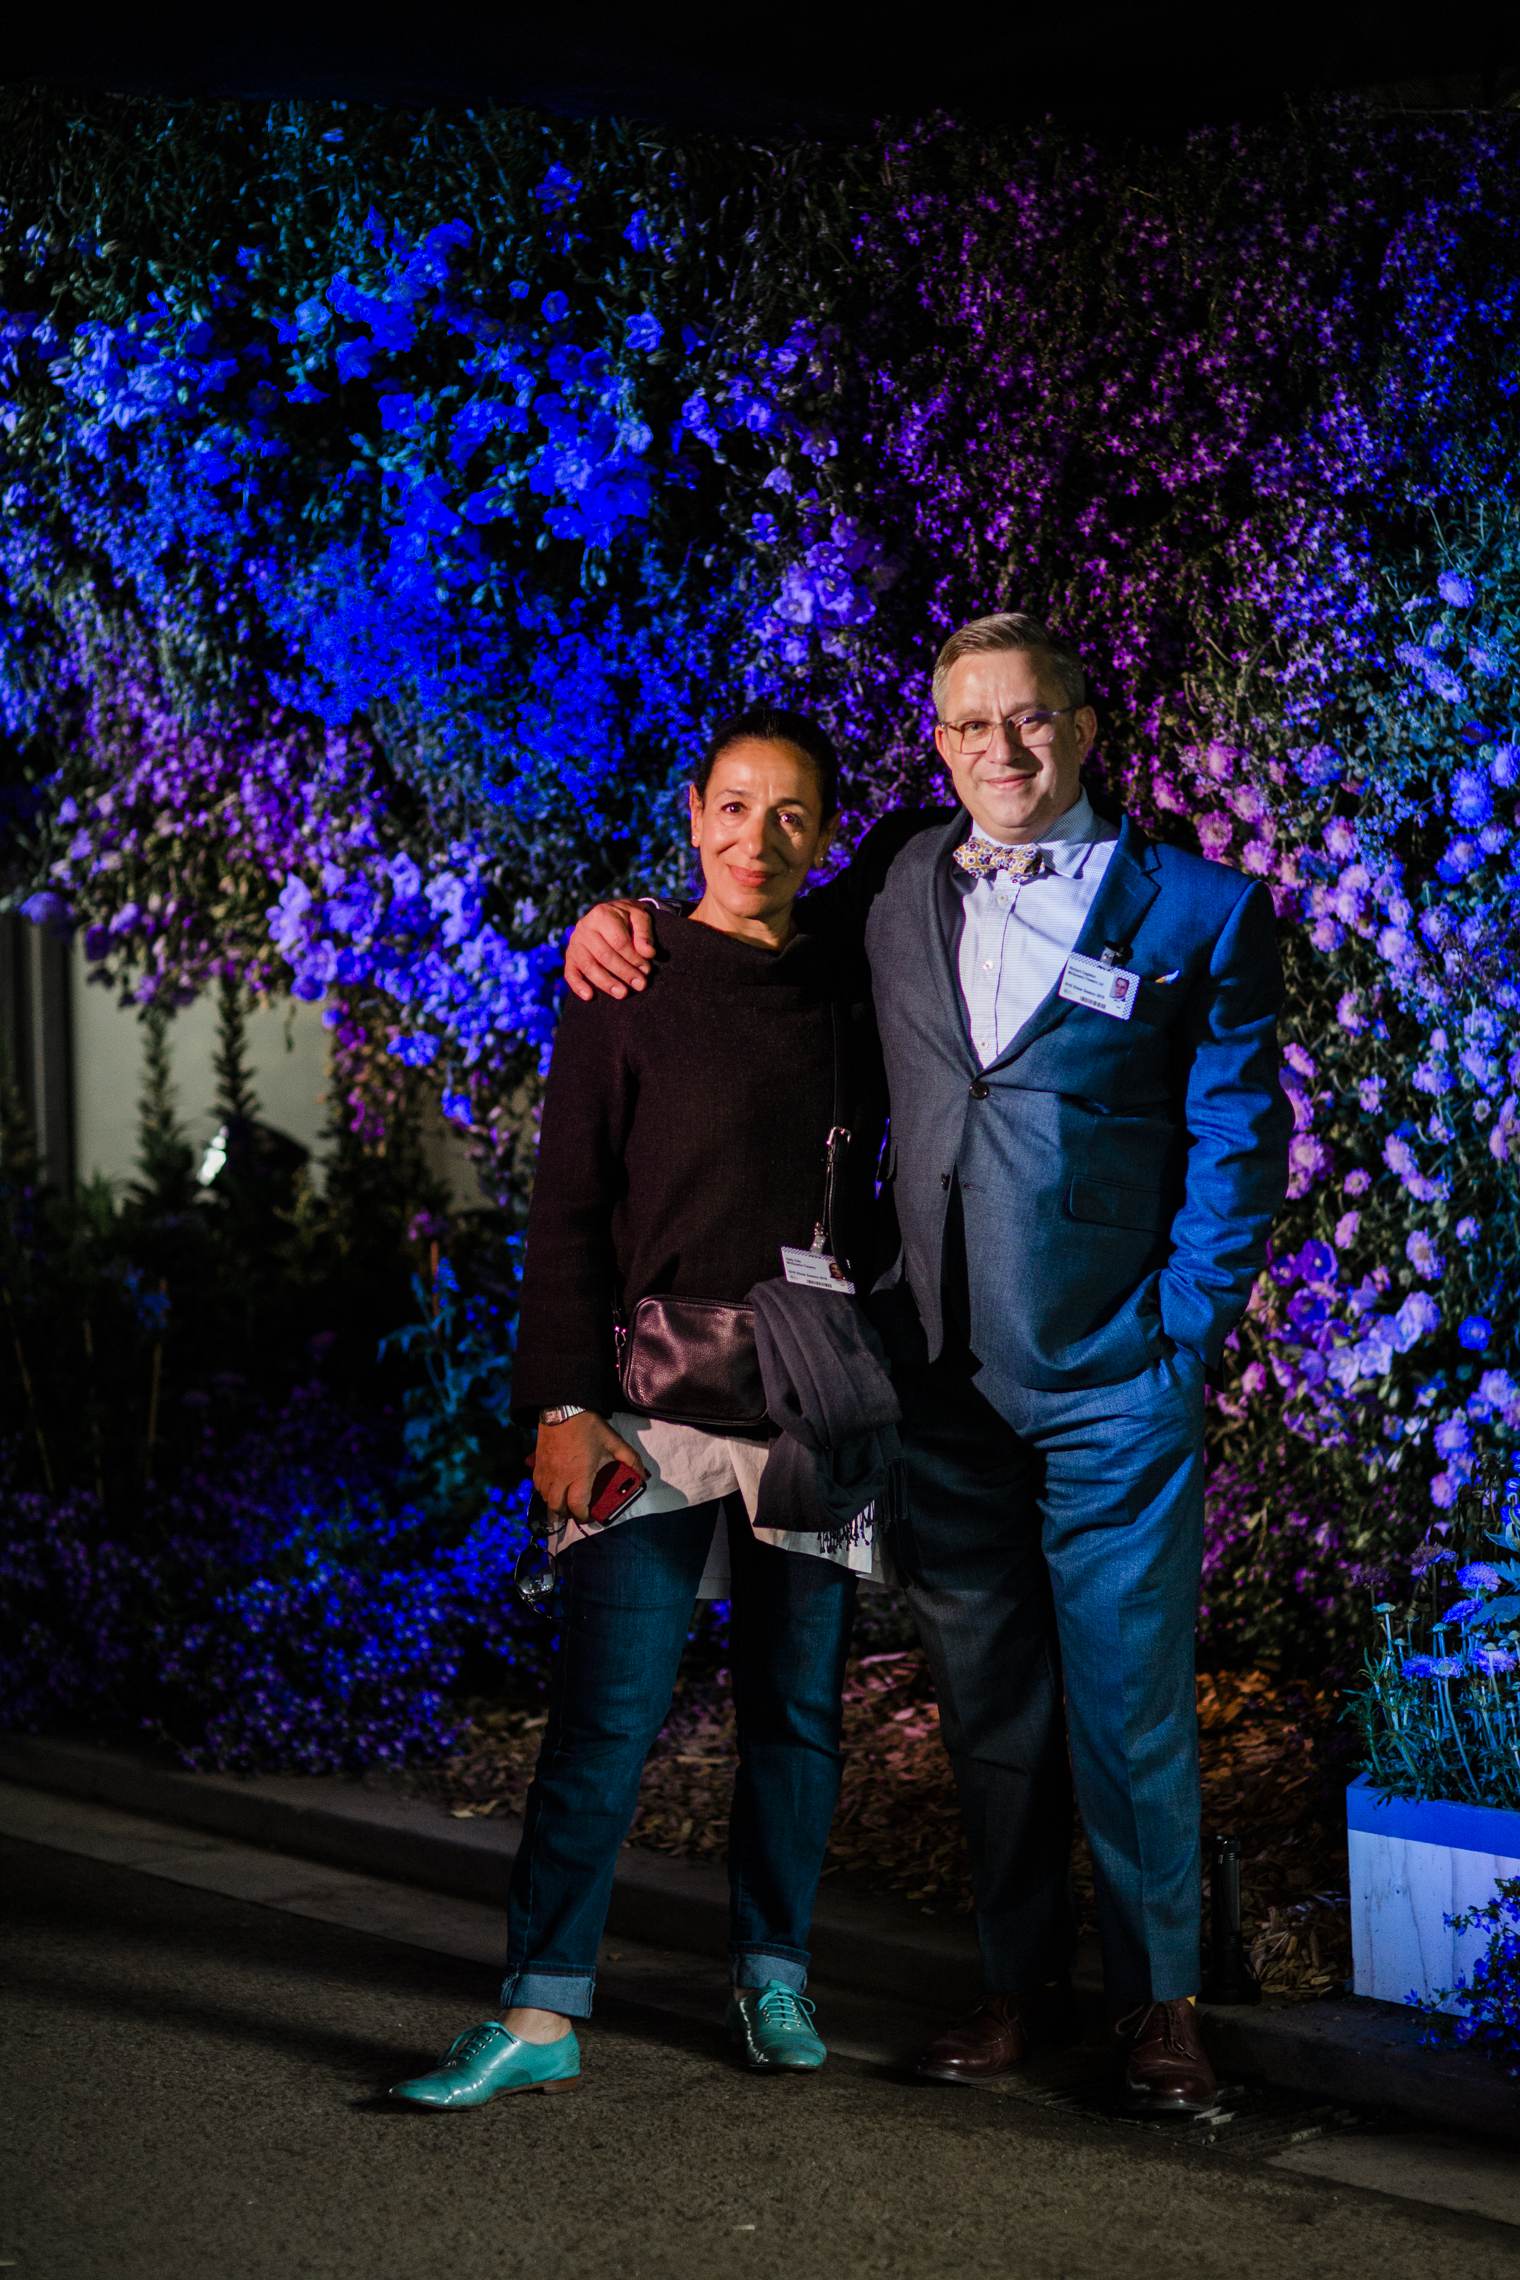 McQueens founder and owner Kally Ellis (left) and new managing director, Richard Eagleton (right) at the RHS Chelsea Flower Show 2019